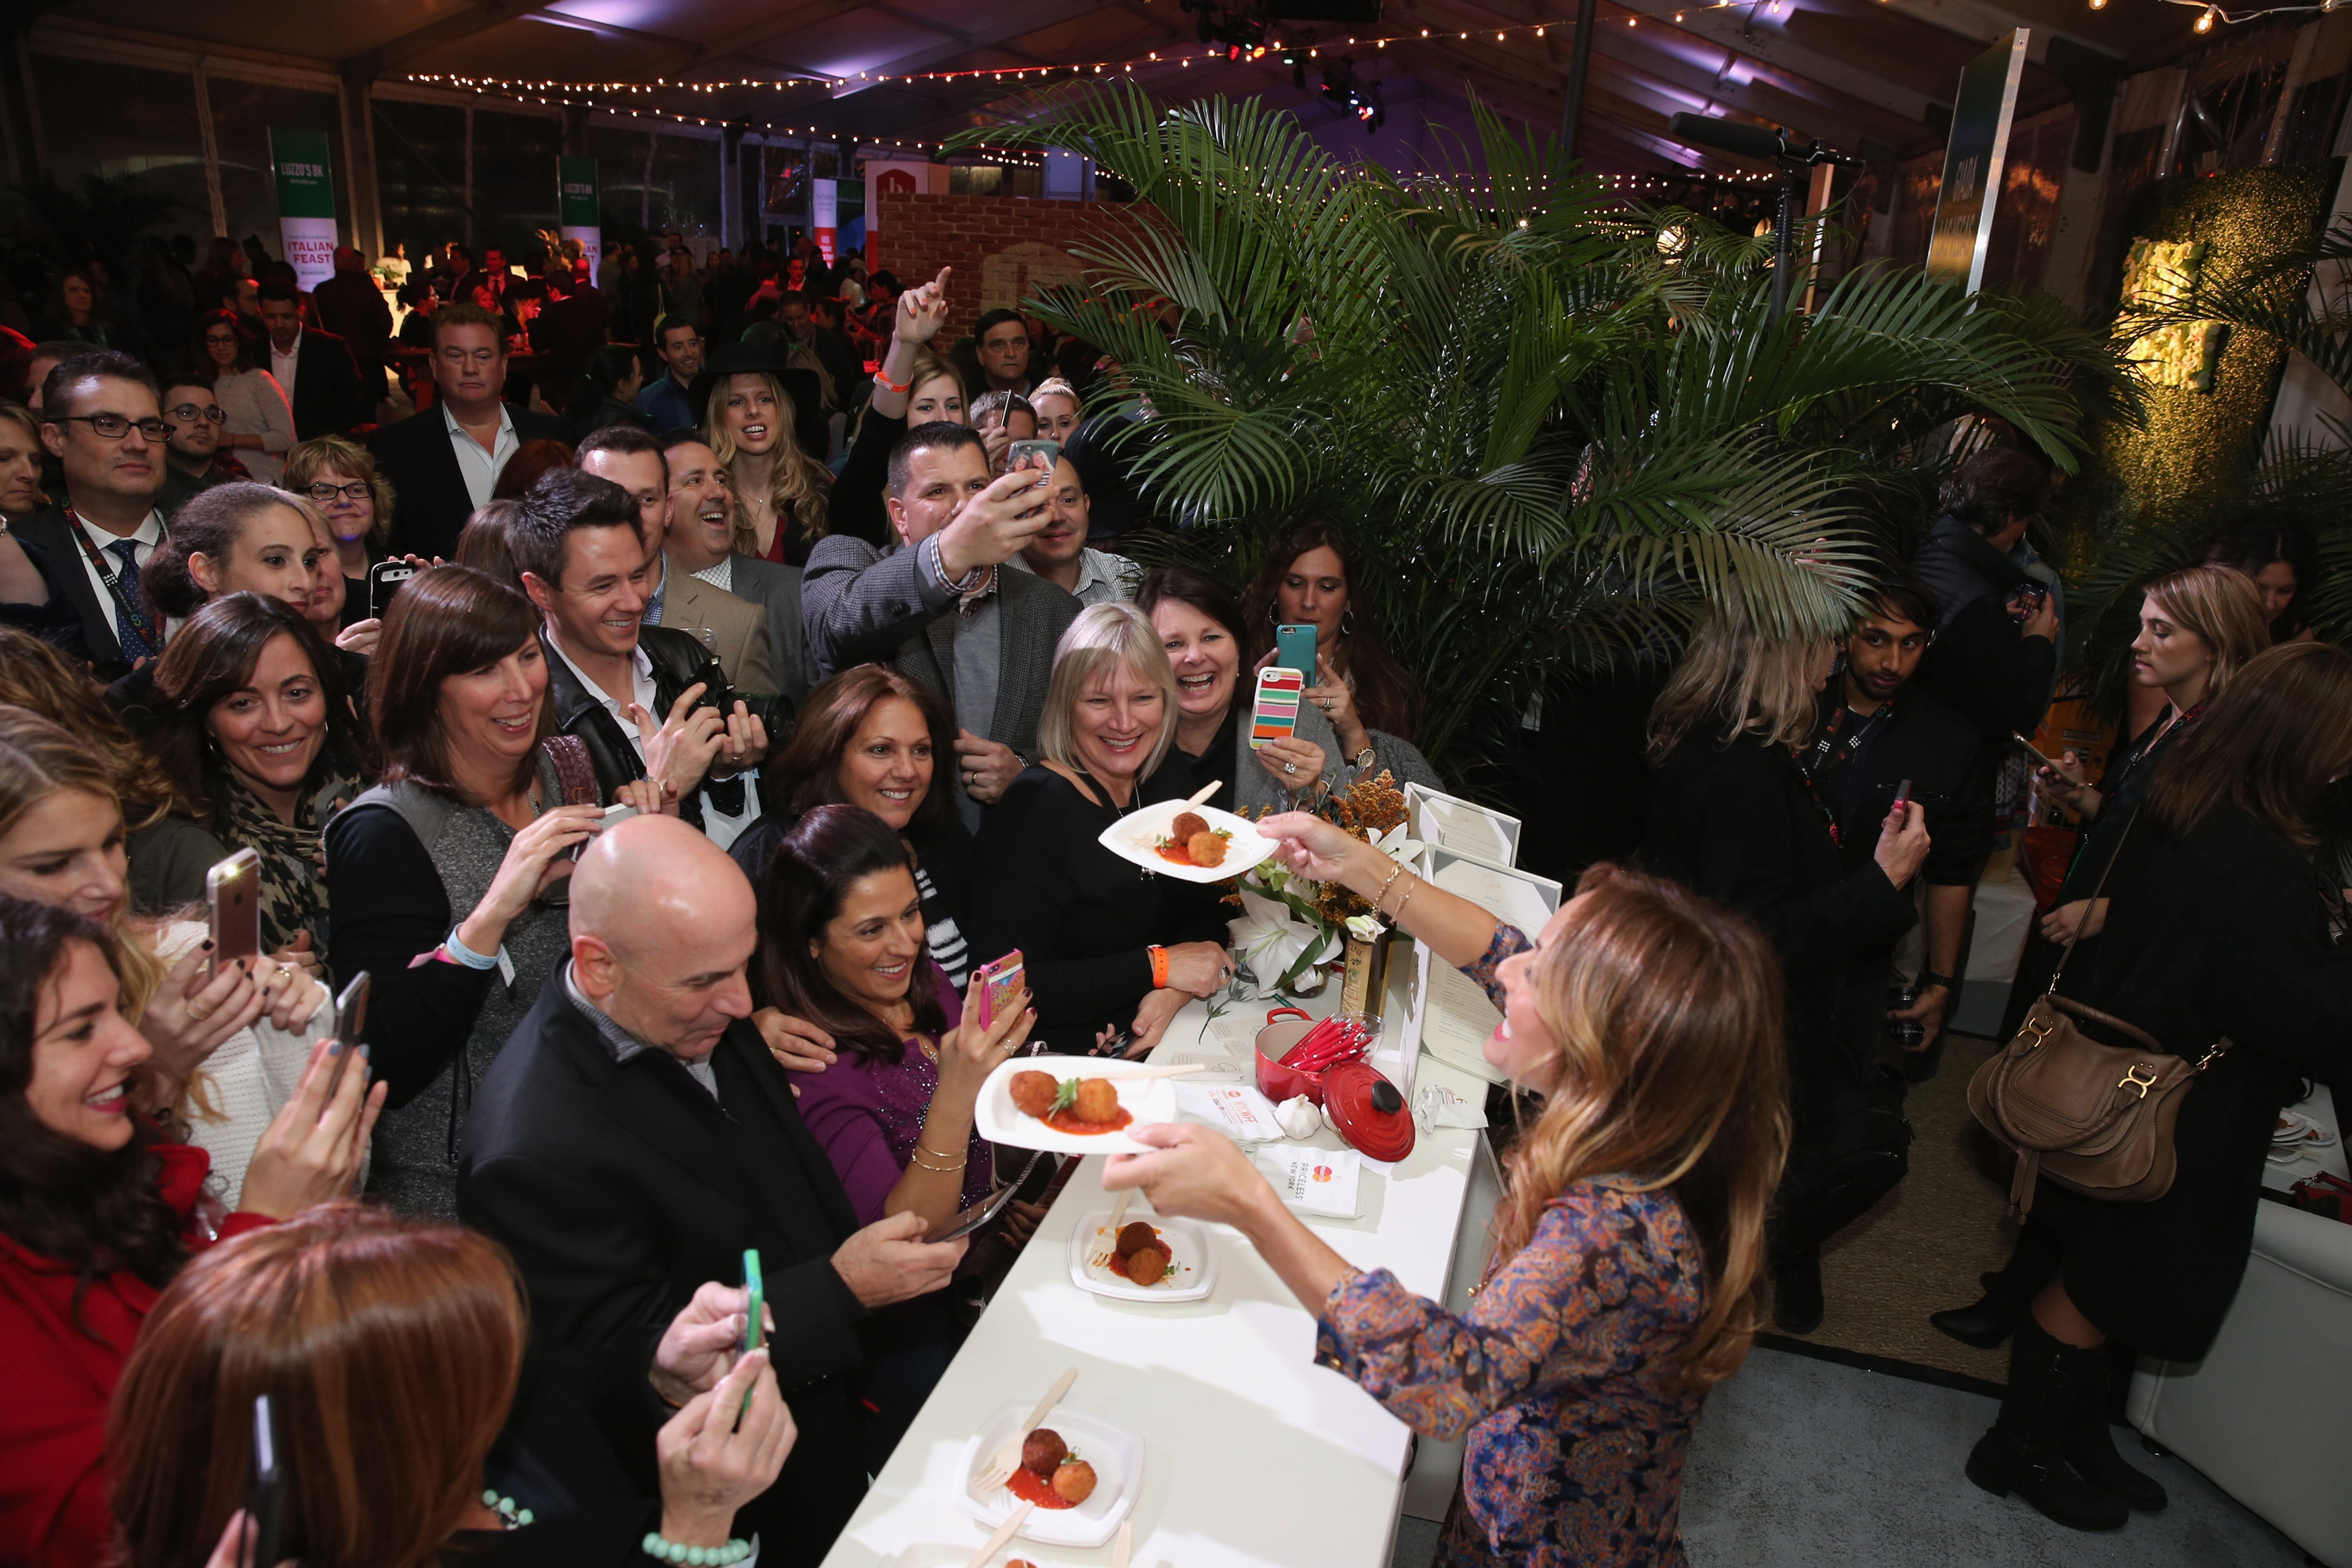 NEW YORK, NY - OCTOBER 15:  Chef Giada De Laurentis greets guests with food at Giada De Laurentiis' Italian Feast presented by Ronzoni sponsored by The New York Post during Food Network & Cooking Channel New York City Wine & Food Festival presented By FOOD & WINE at Pier 92 on October 15, 2015 in New York City.  (Photo by Neilson Barnard/Getty Images for NYCWFF)